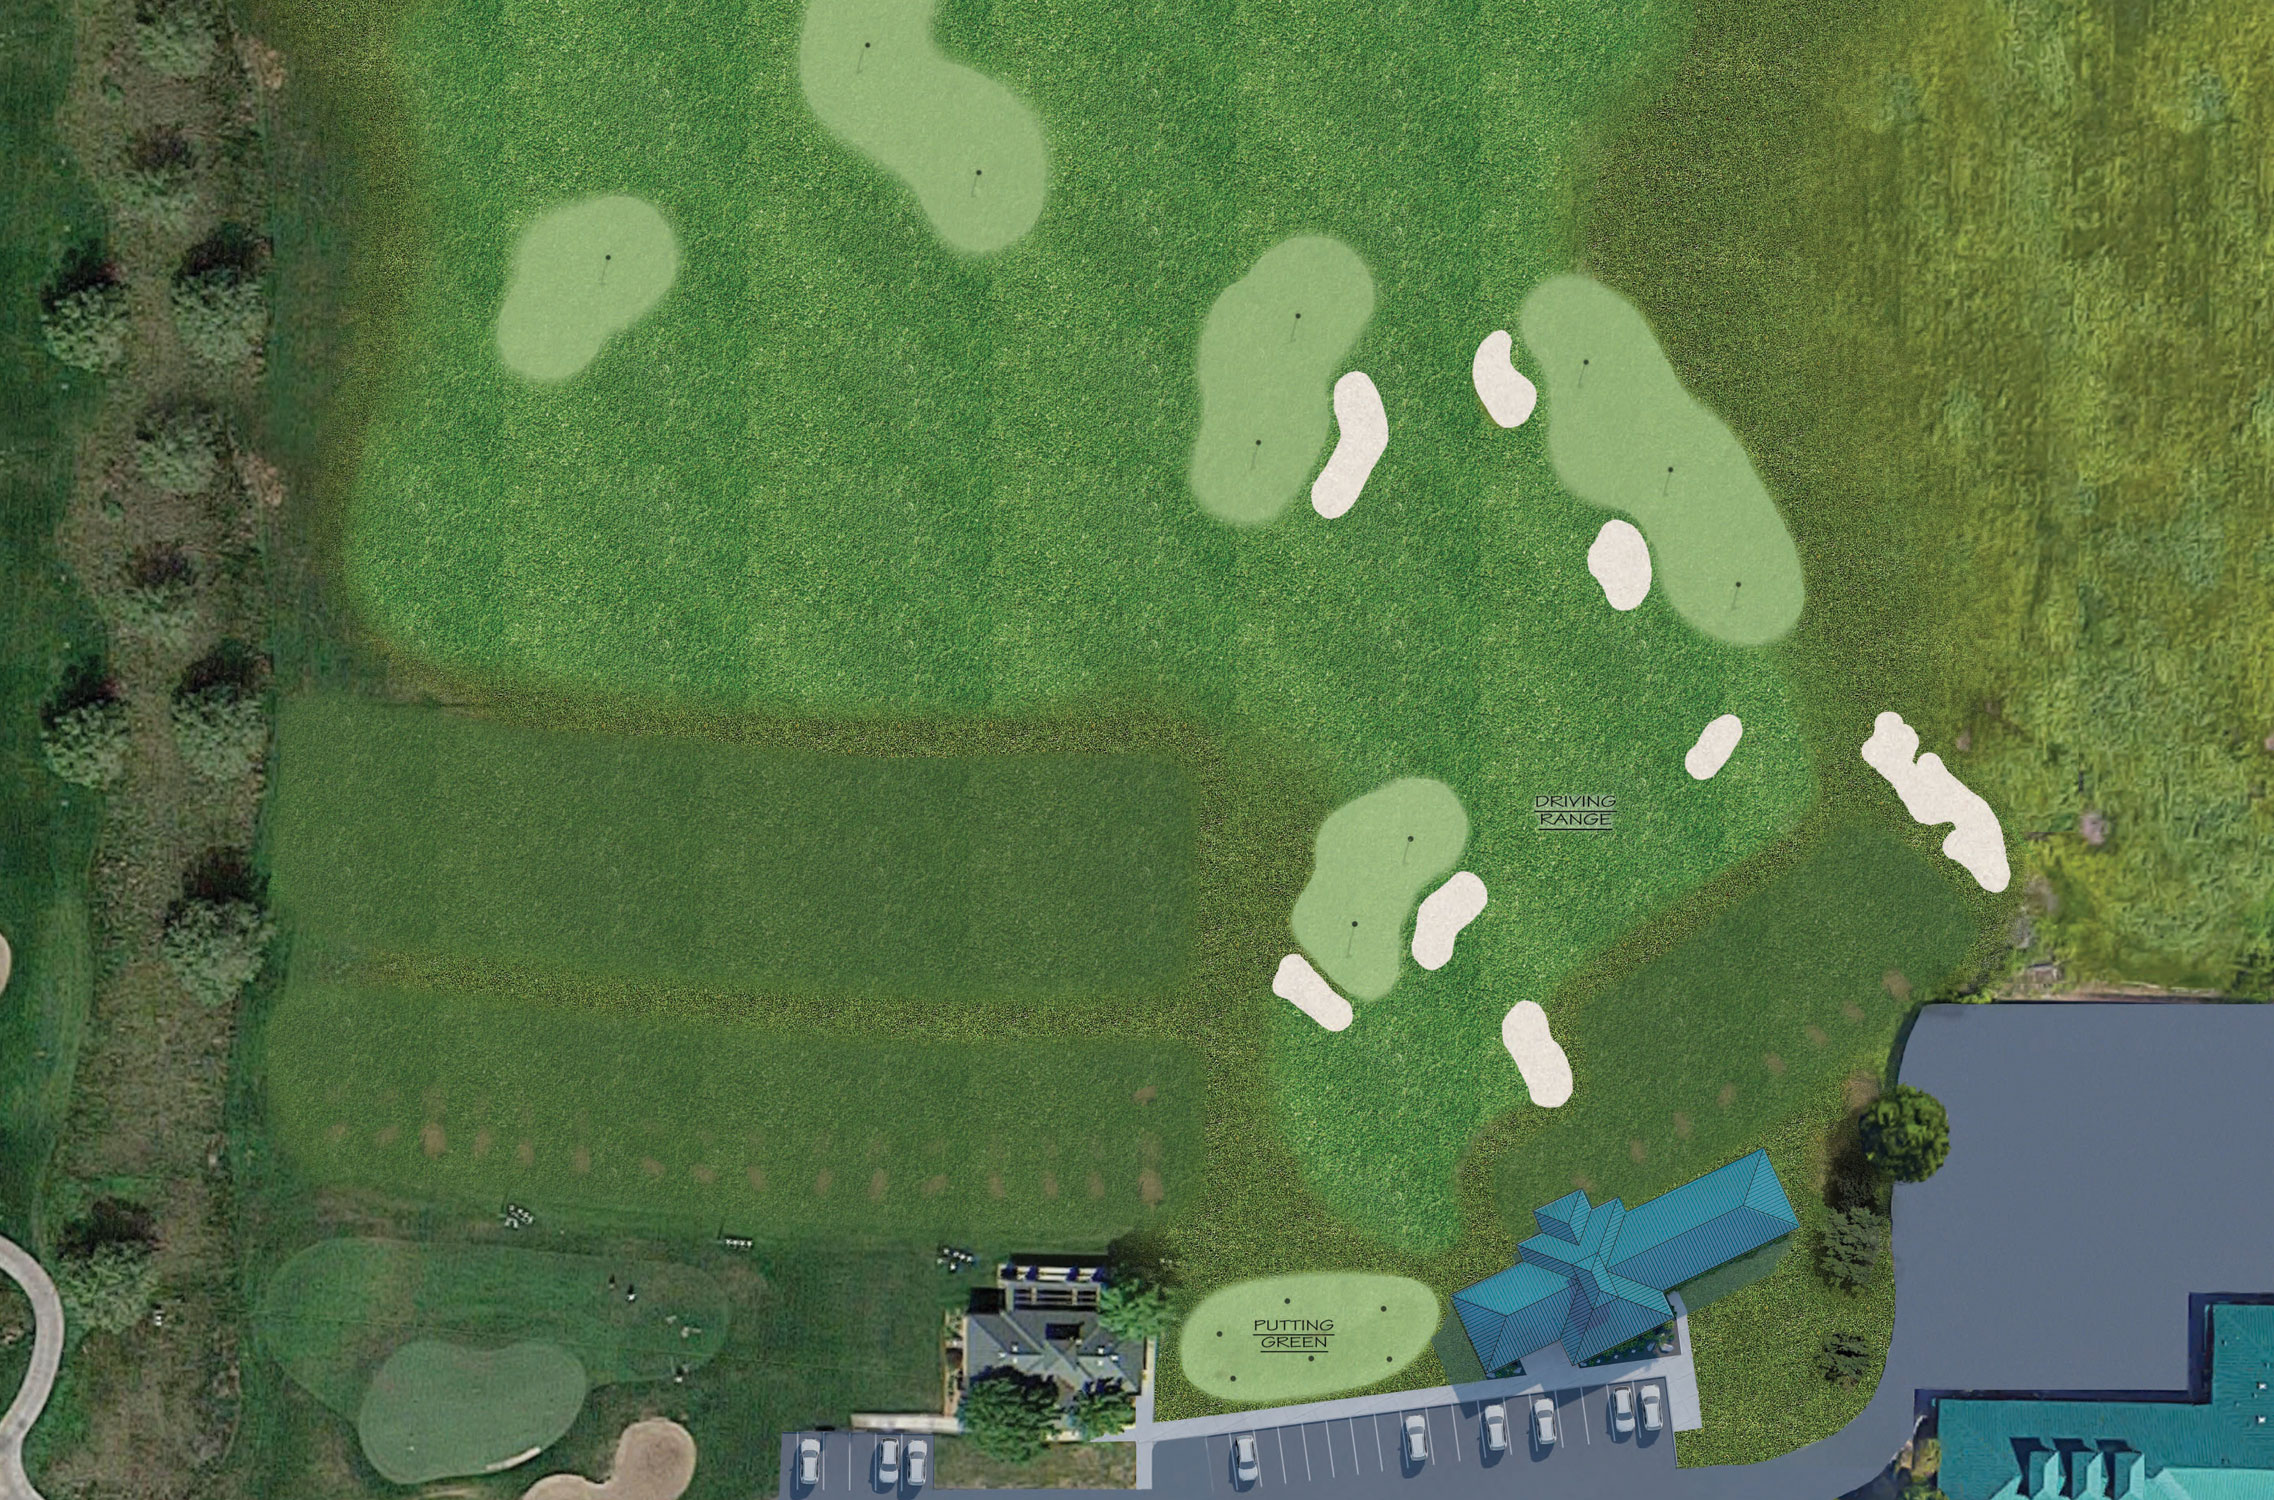 Golf Training Facility Course